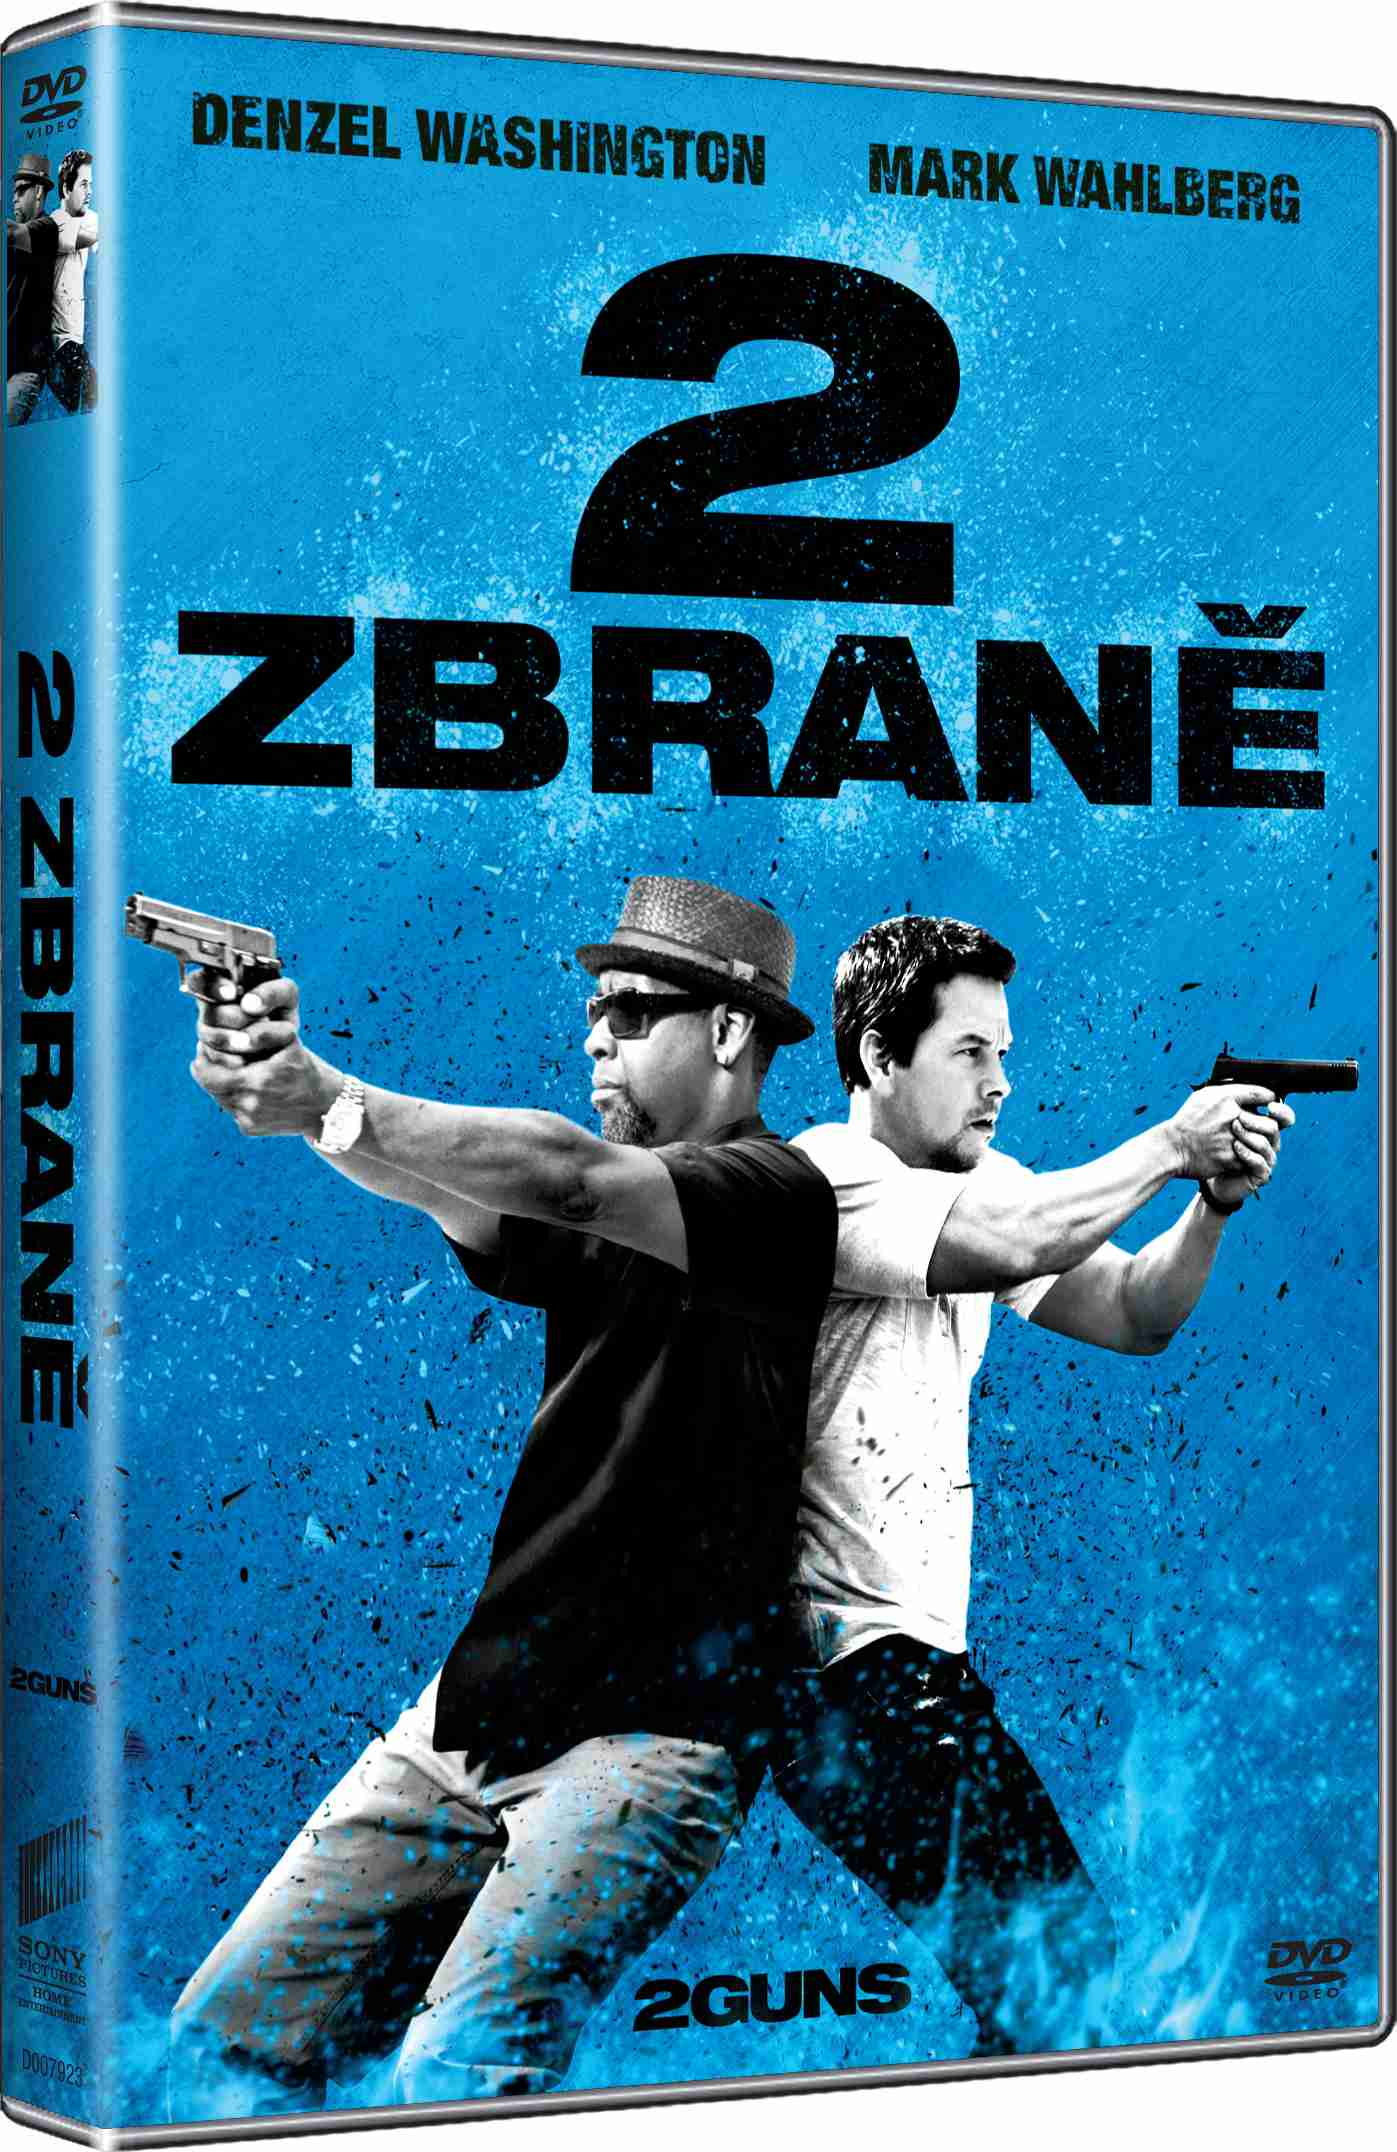 2 ZBRANĚ (Big Face) - DVD